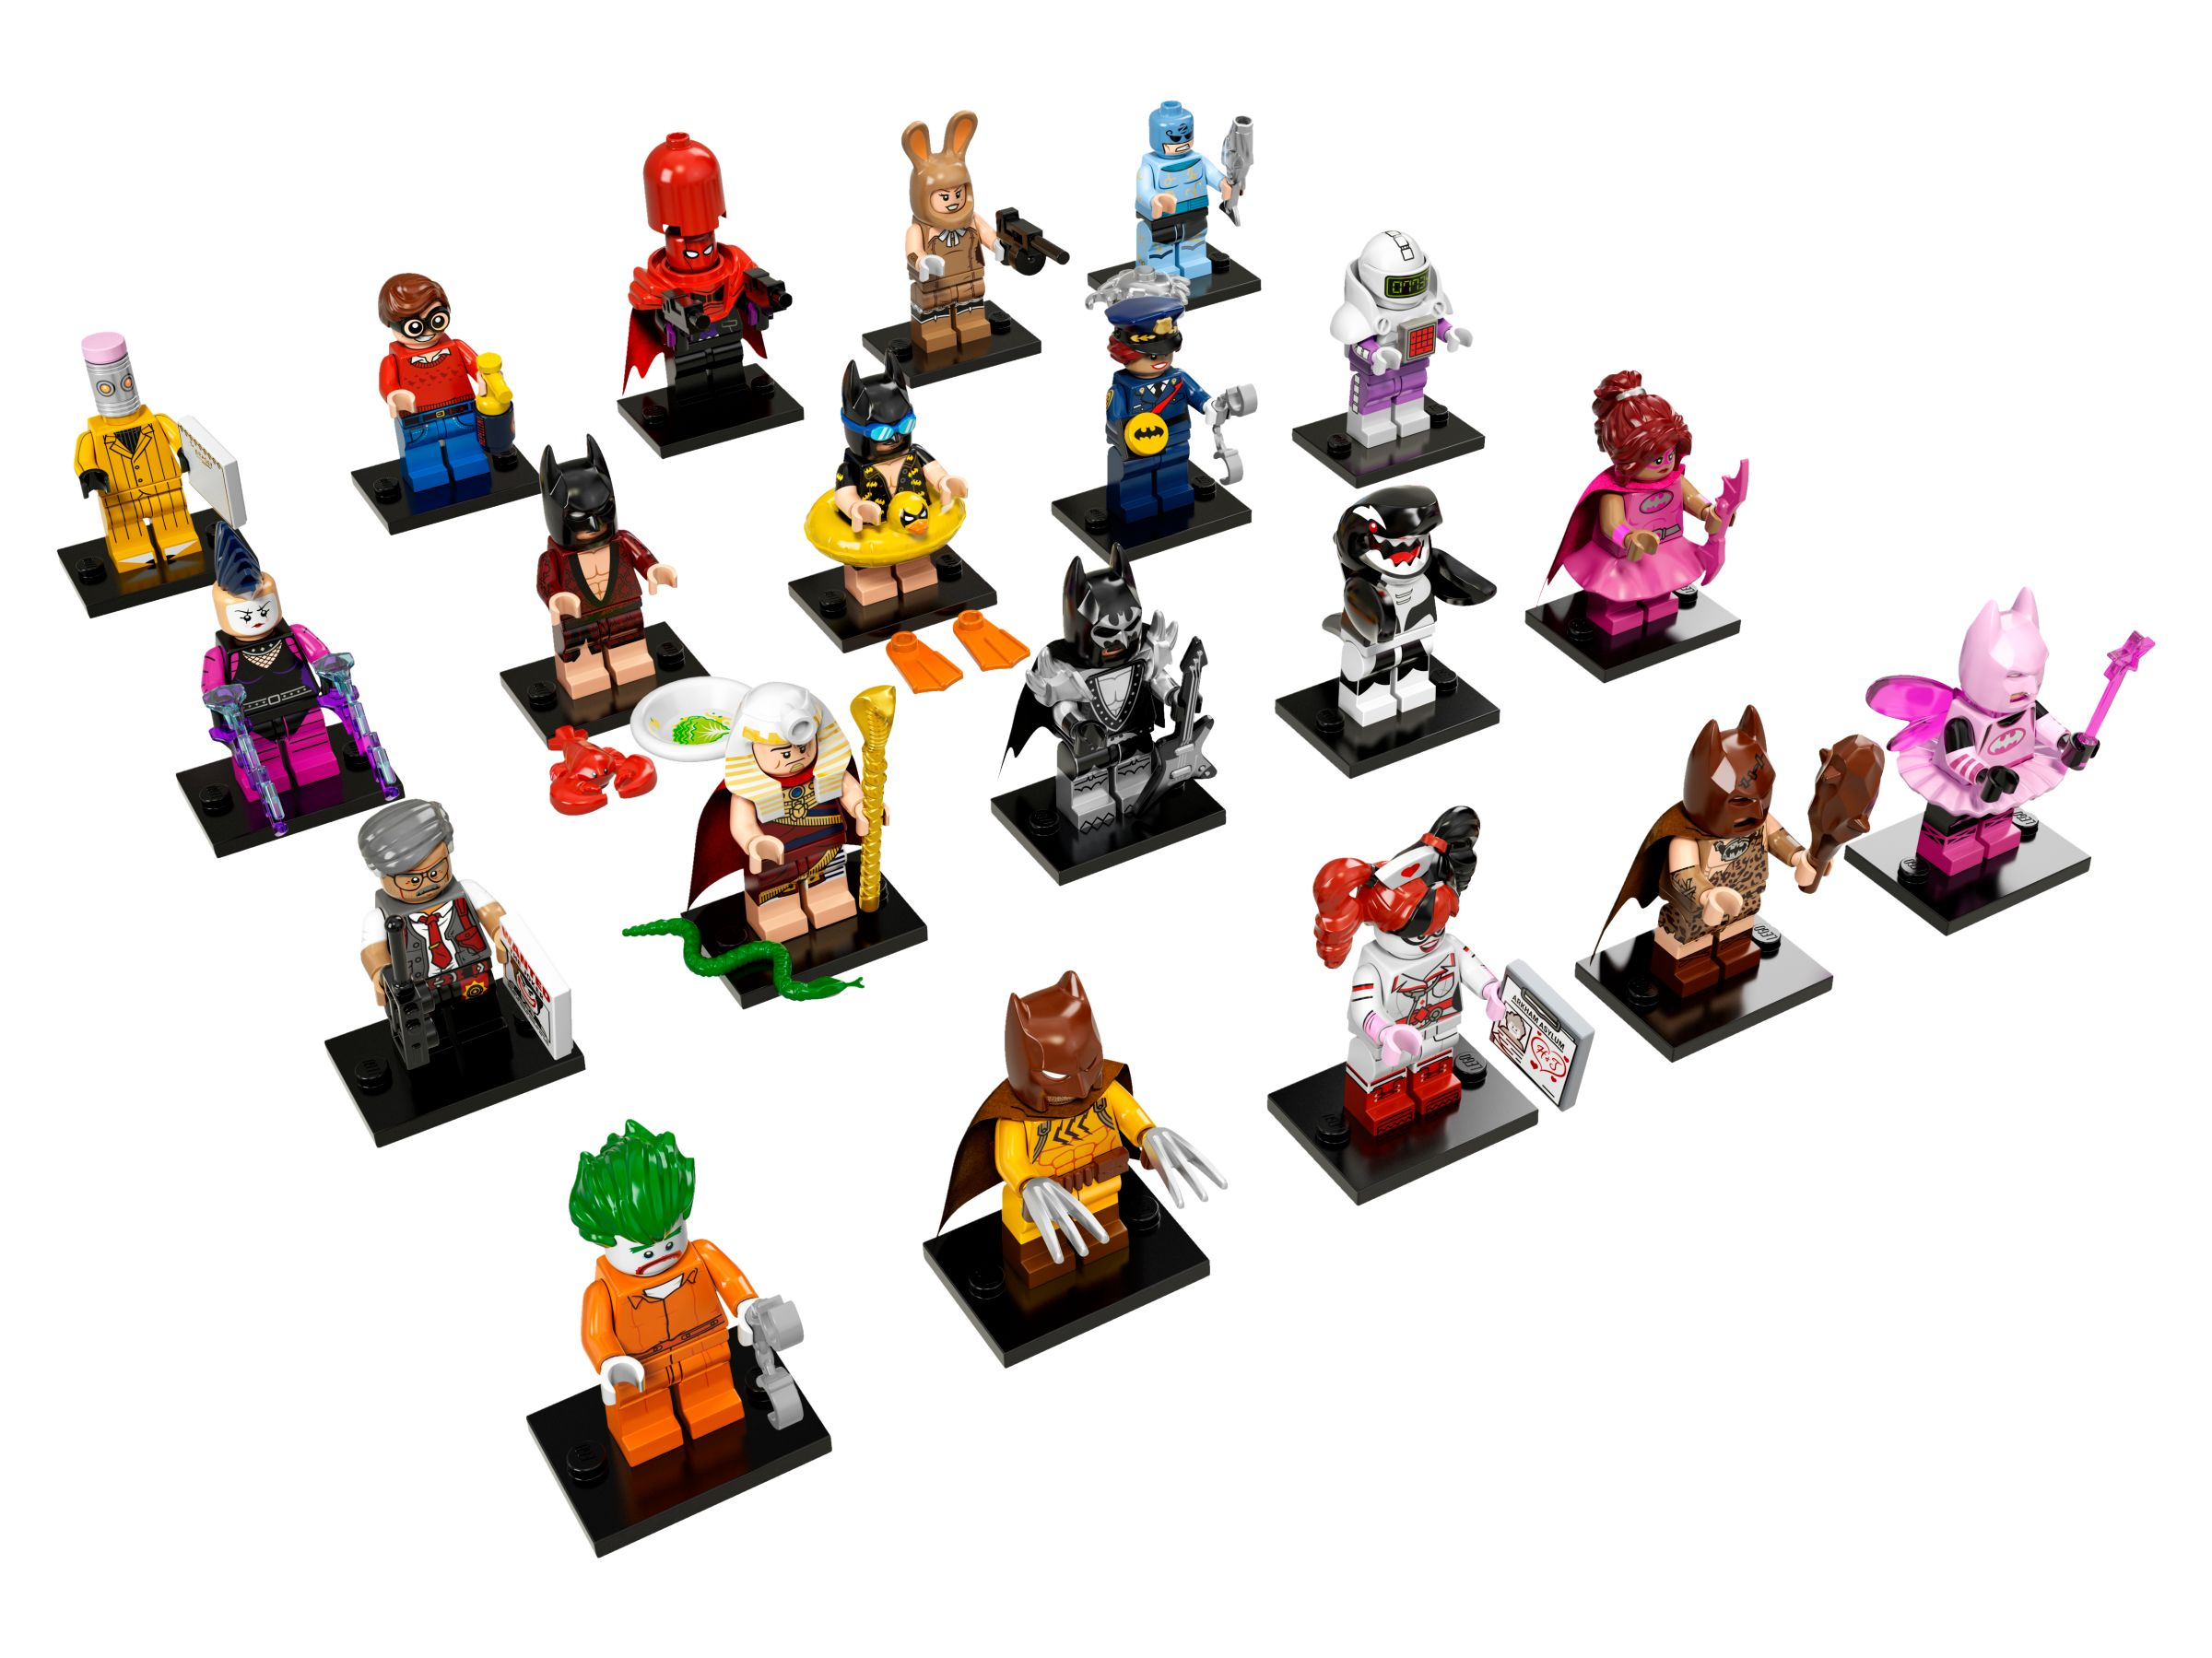 LEGO Collectable Minifigures 71017 LEGO® Batman Movie Minifiguren Serie LEGO_71017.jpg